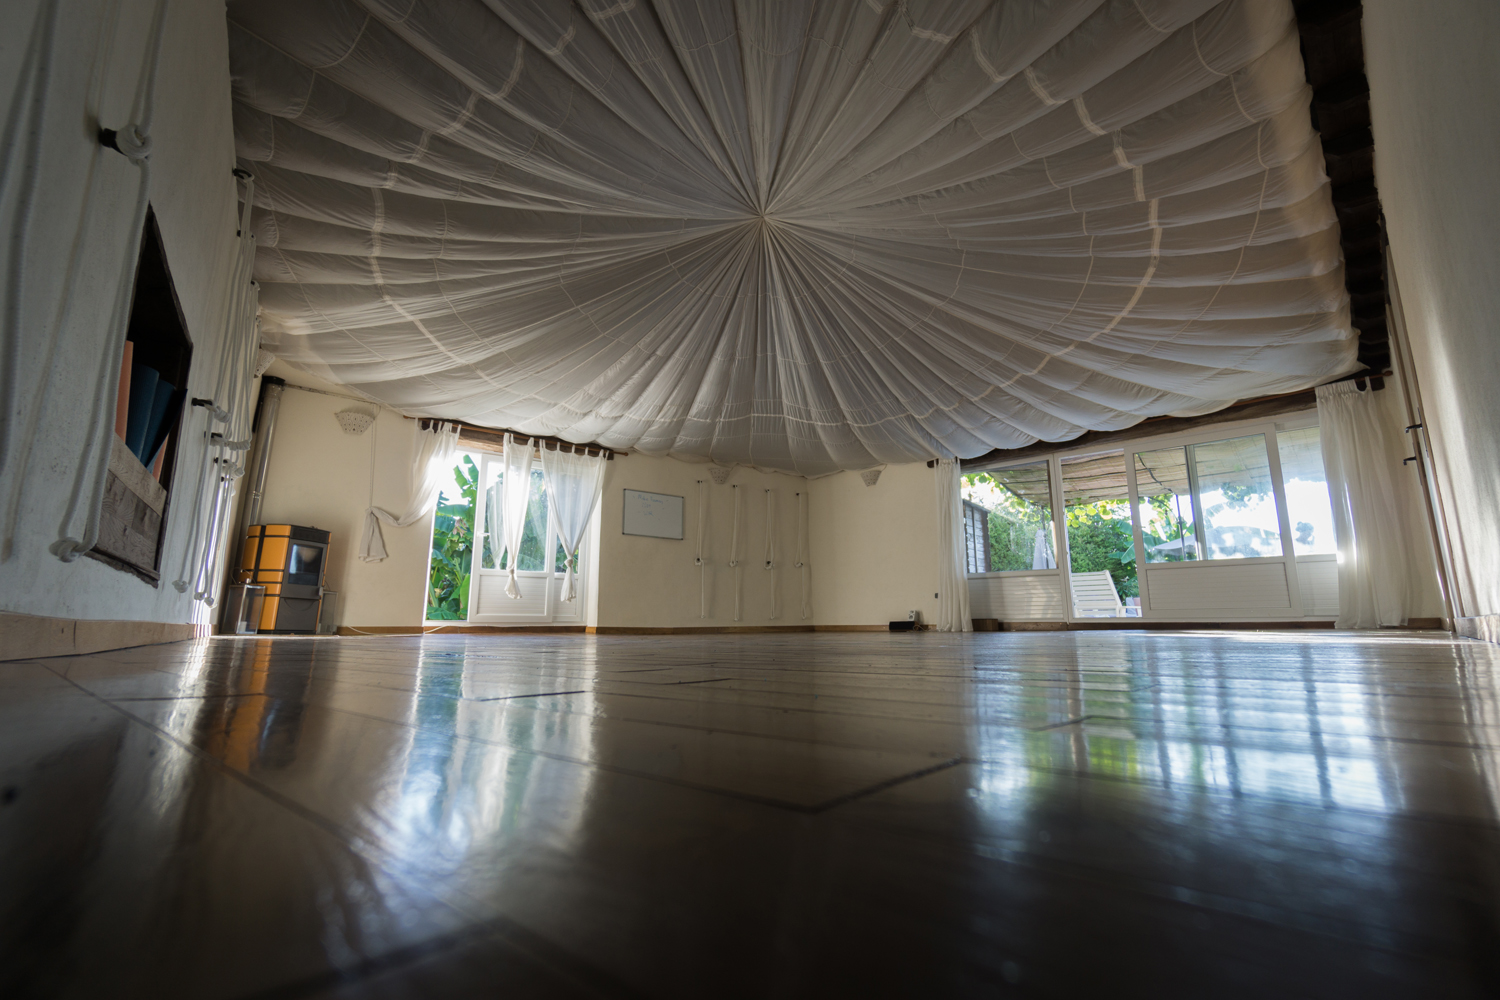 The view from your mat!                                                                                                                          Image ©Tom Gutteridge